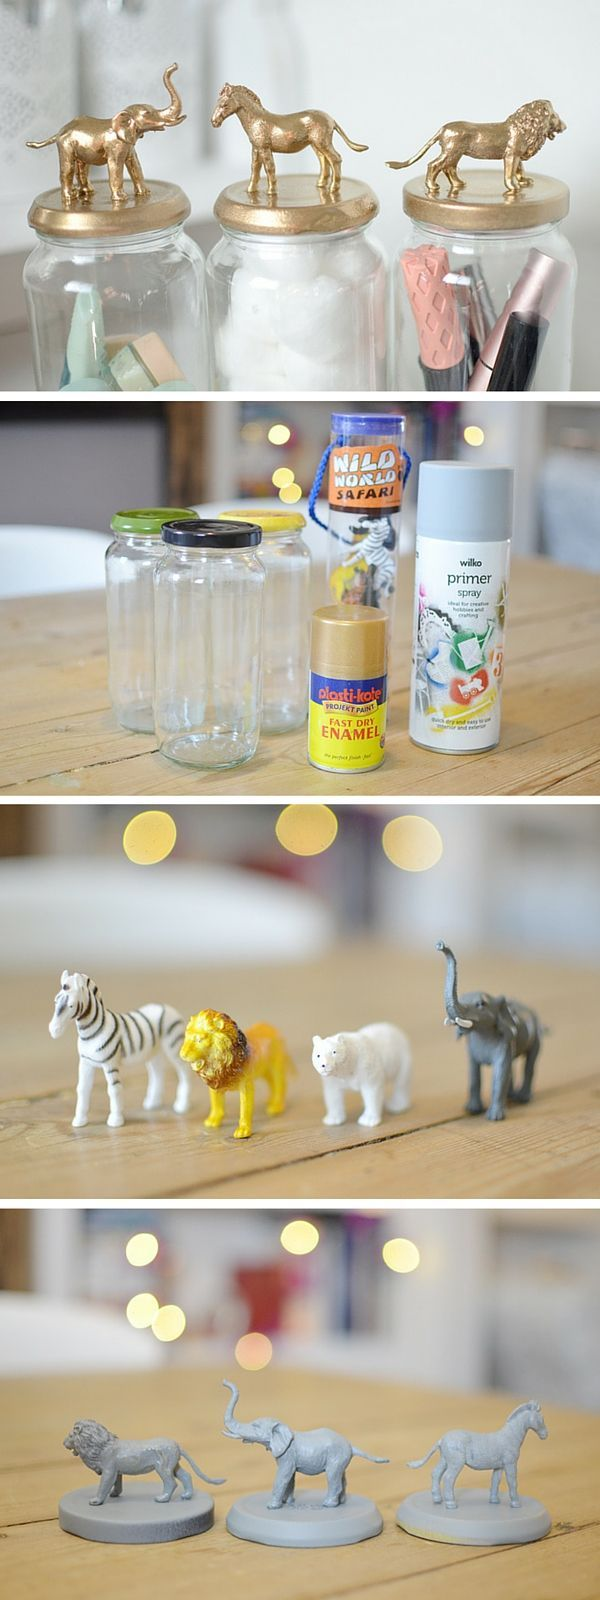 Awesome Fun Diy Home Decor Ideas Part - 10: 15 Cool DIYs To Turn Your Home Decor From Plain To Awesome